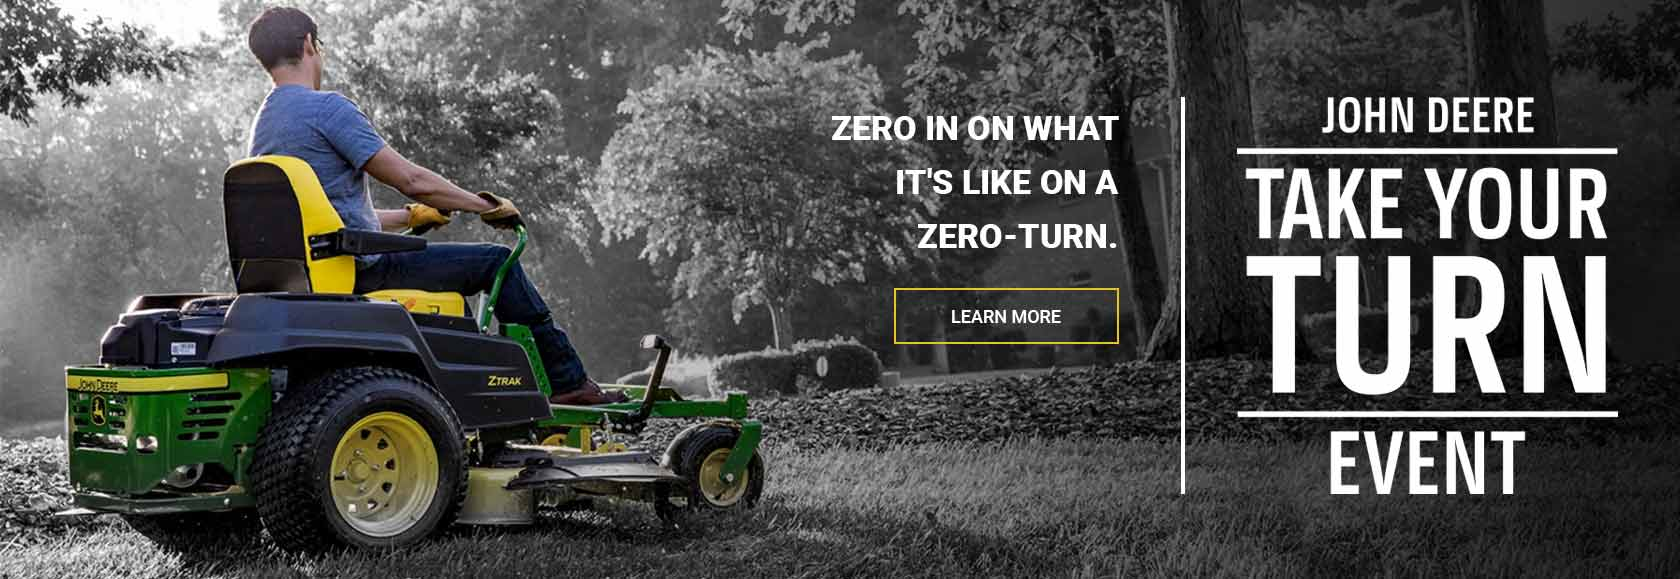 John Deere Take Your Turn Event - Zero in on what it's like